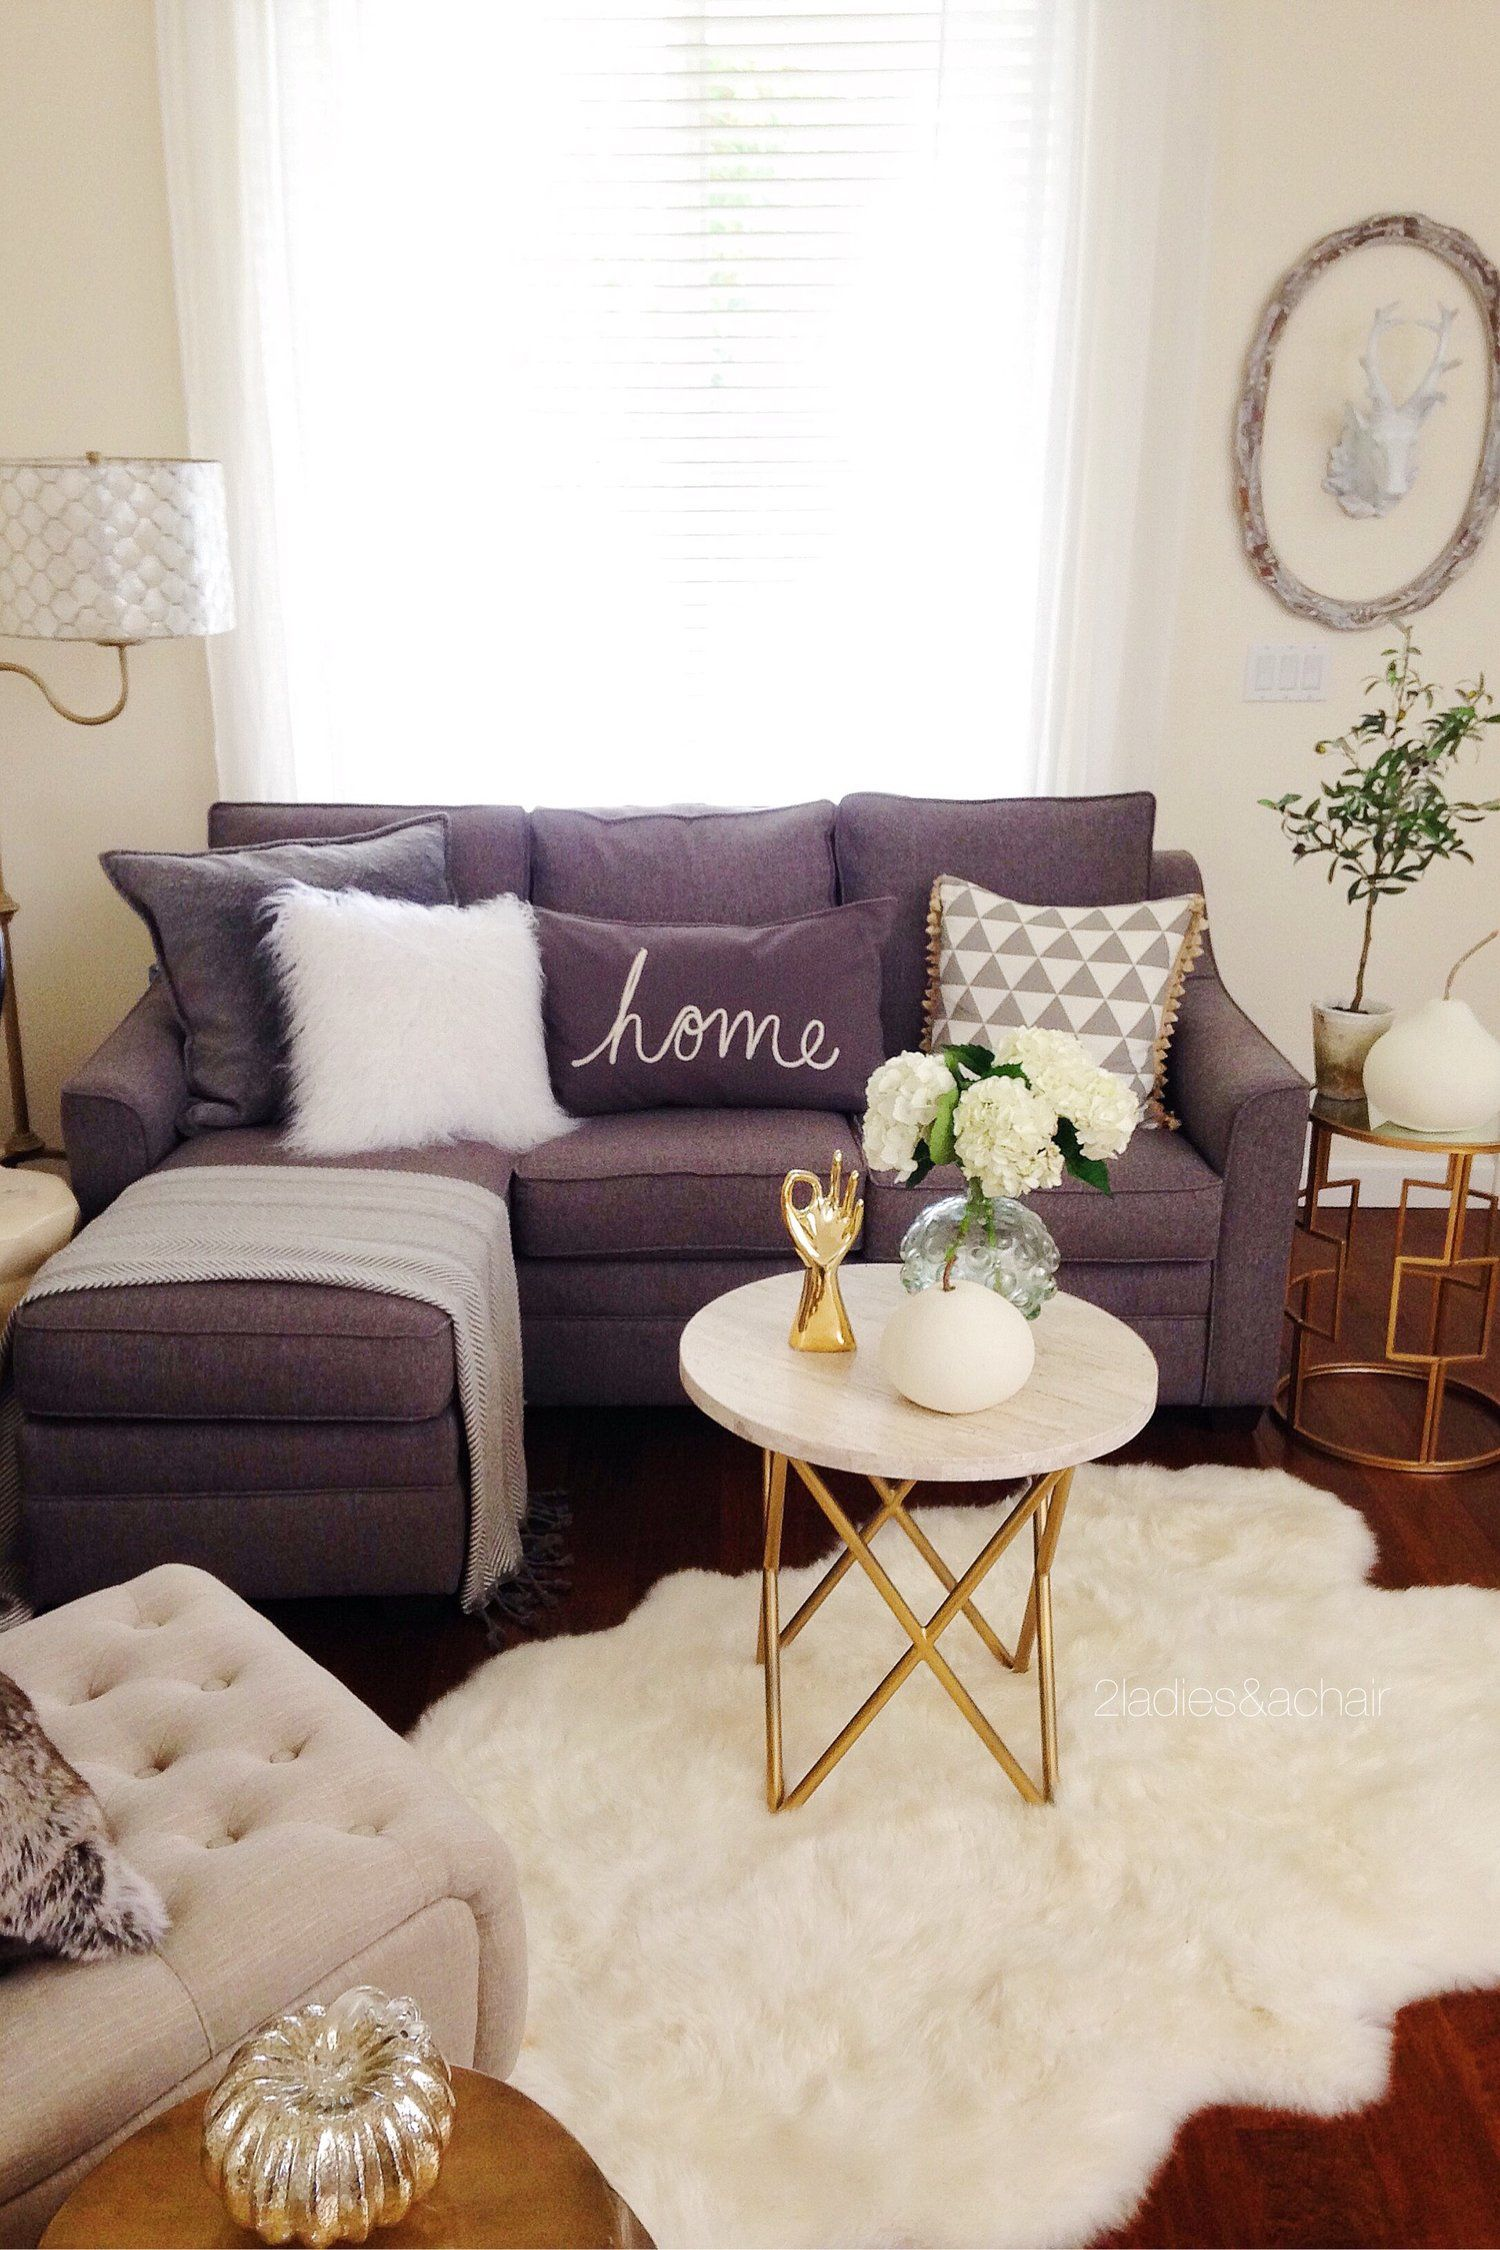 Incredible Sep 14 Transitioning Into Fall Decor My Apartment Ideas Download Free Architecture Designs Scobabritishbridgeorg